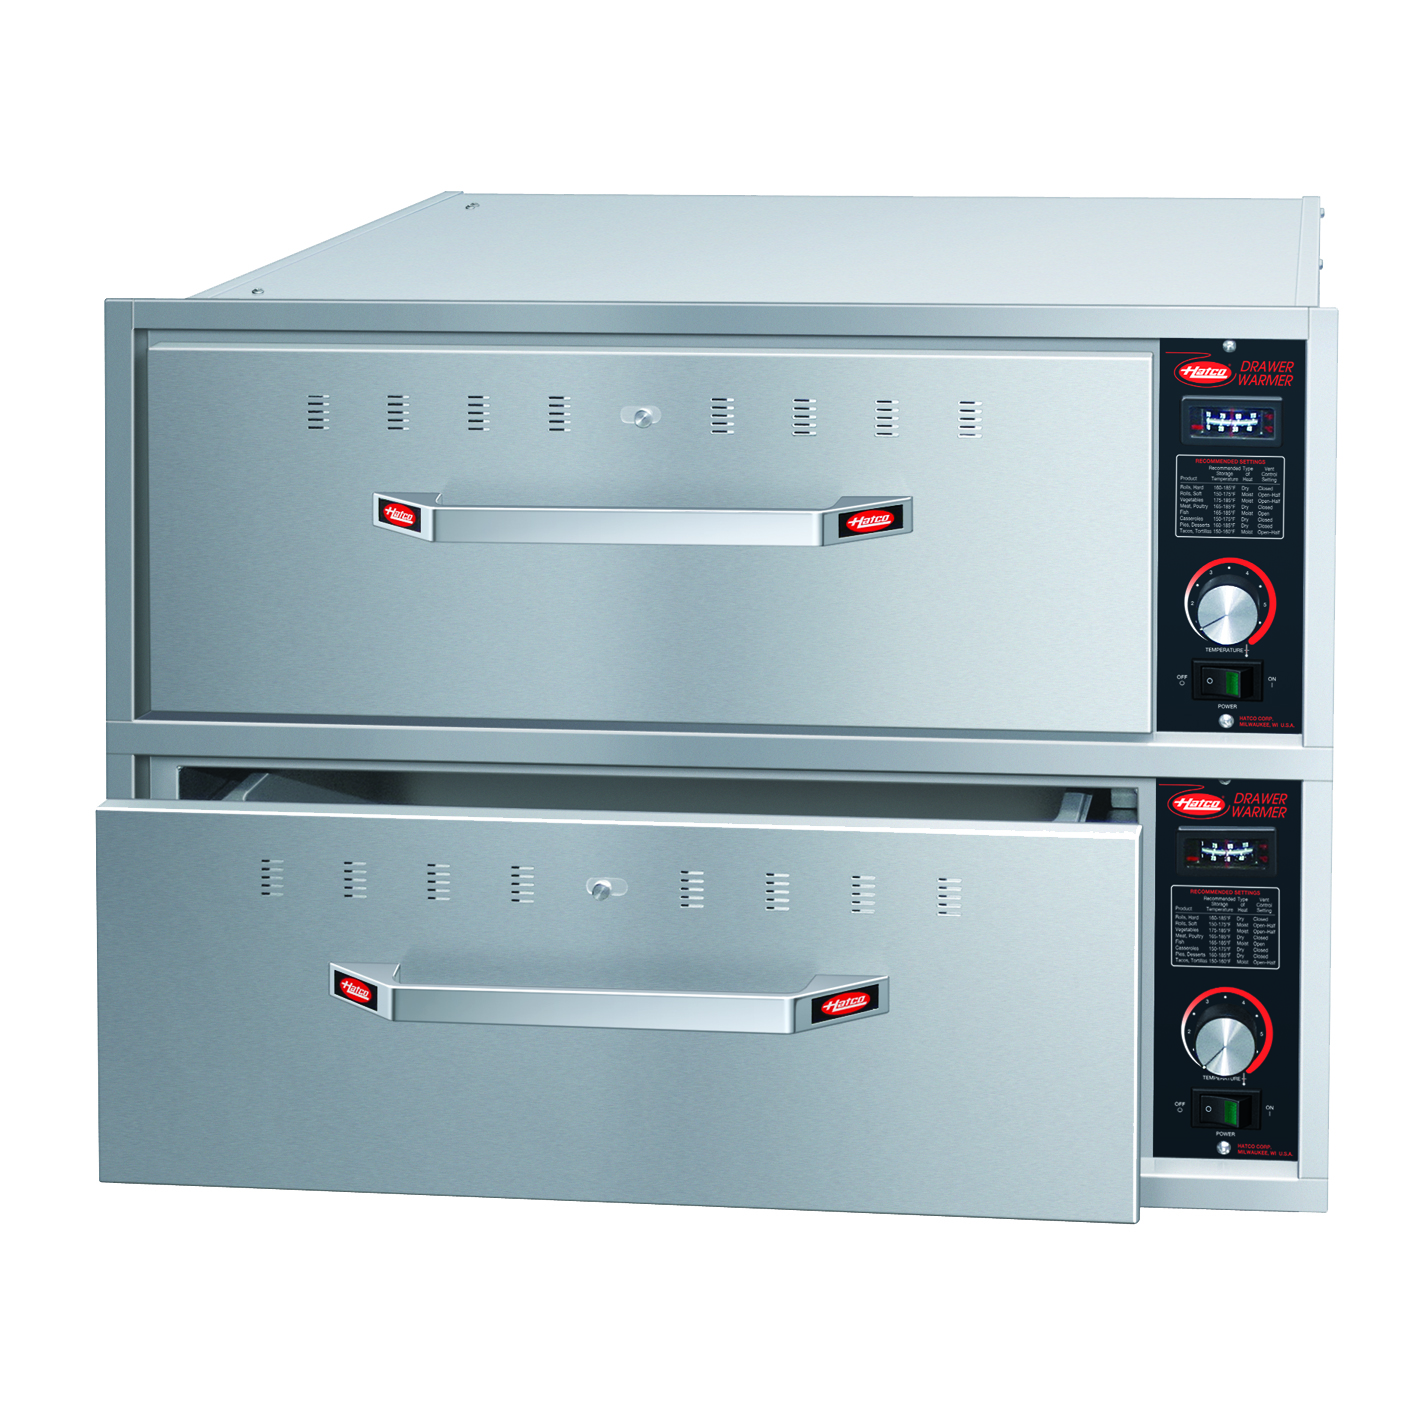 Hatco HDW-2B warming drawer, built-in